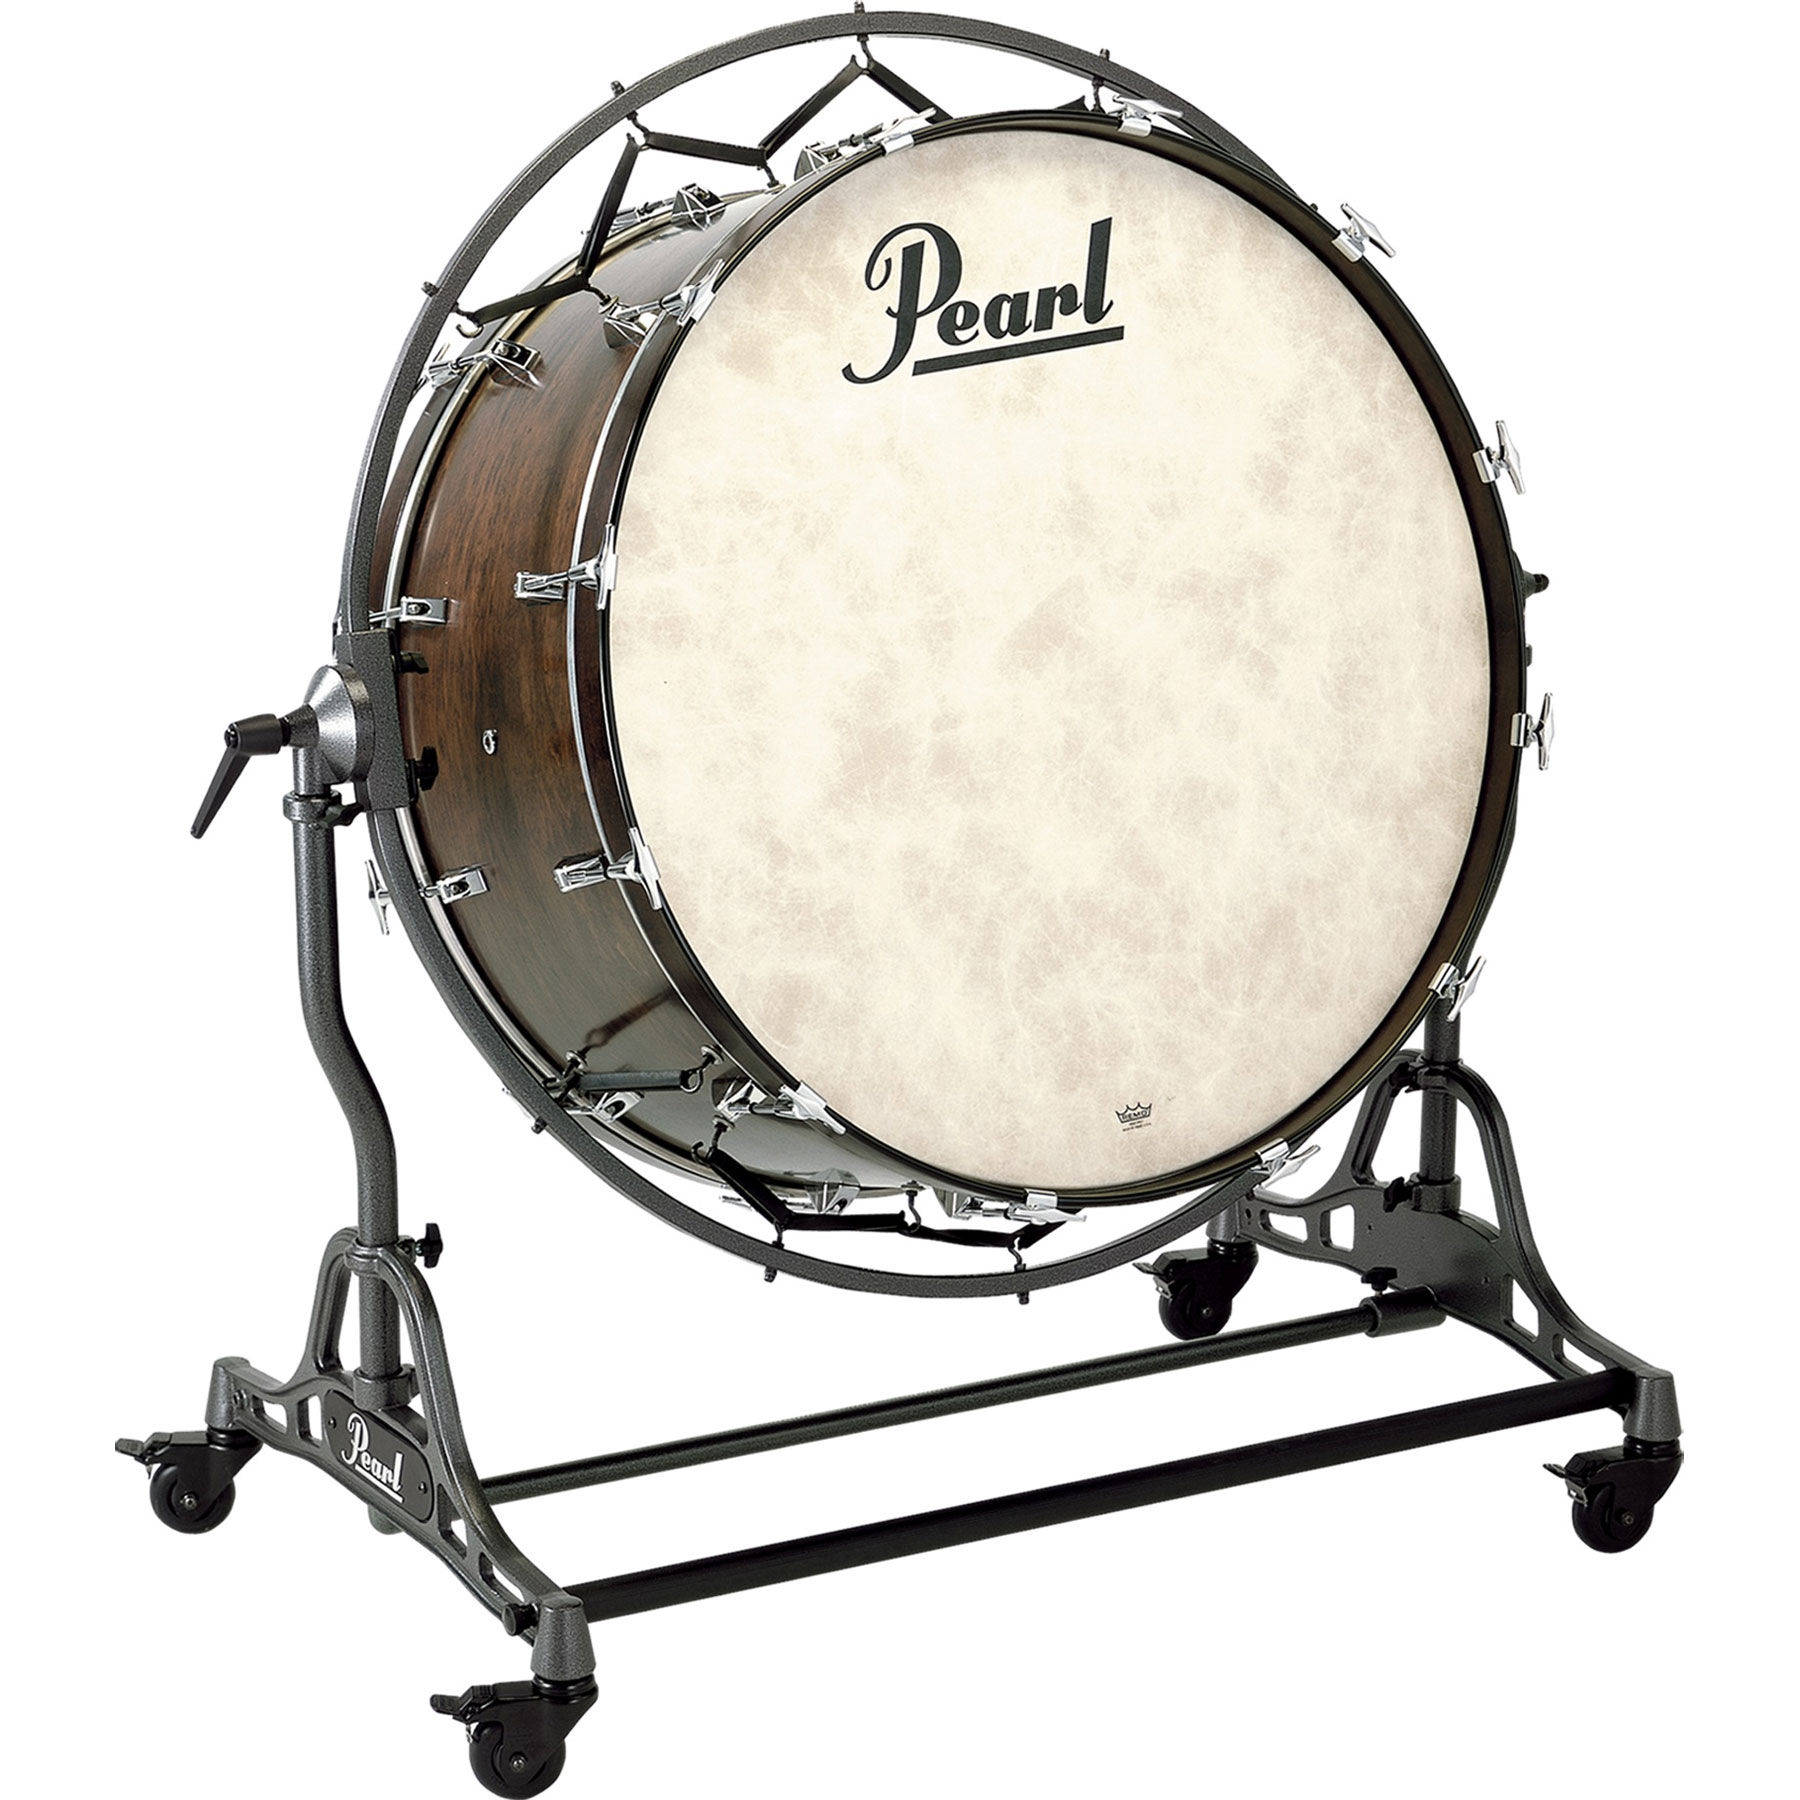 "Pearl 36"" (Diameter) x 18"" (Deep) Philharmonic African Mahogany Concert Bass Drum with STBD Stand"